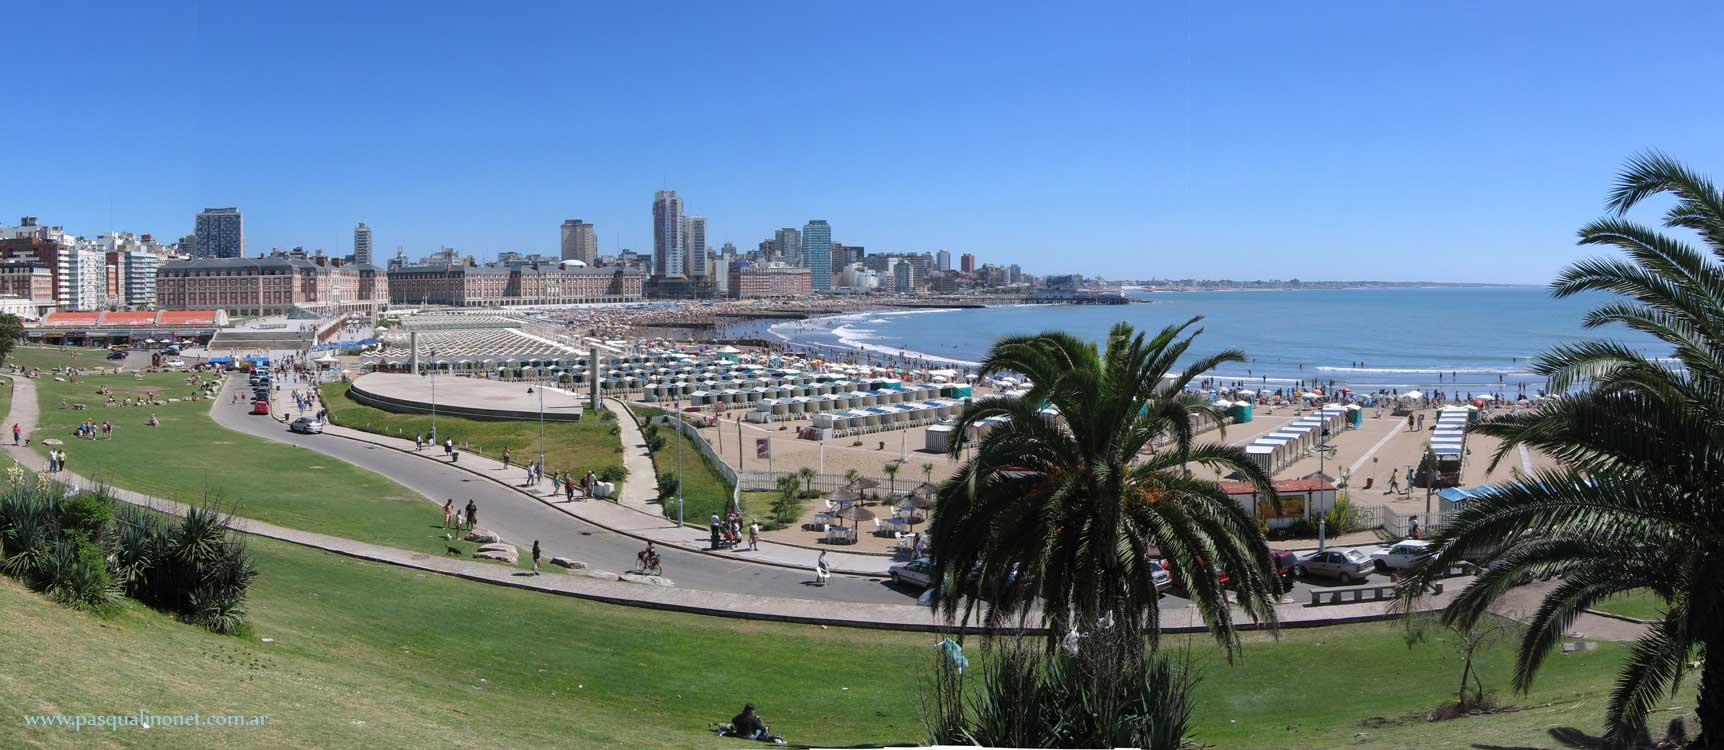 mar del plata women Free to join & browse - 1000's of women in mar del plata, buenos aires - interracial dating, relationships & marriage with ladies & females online.